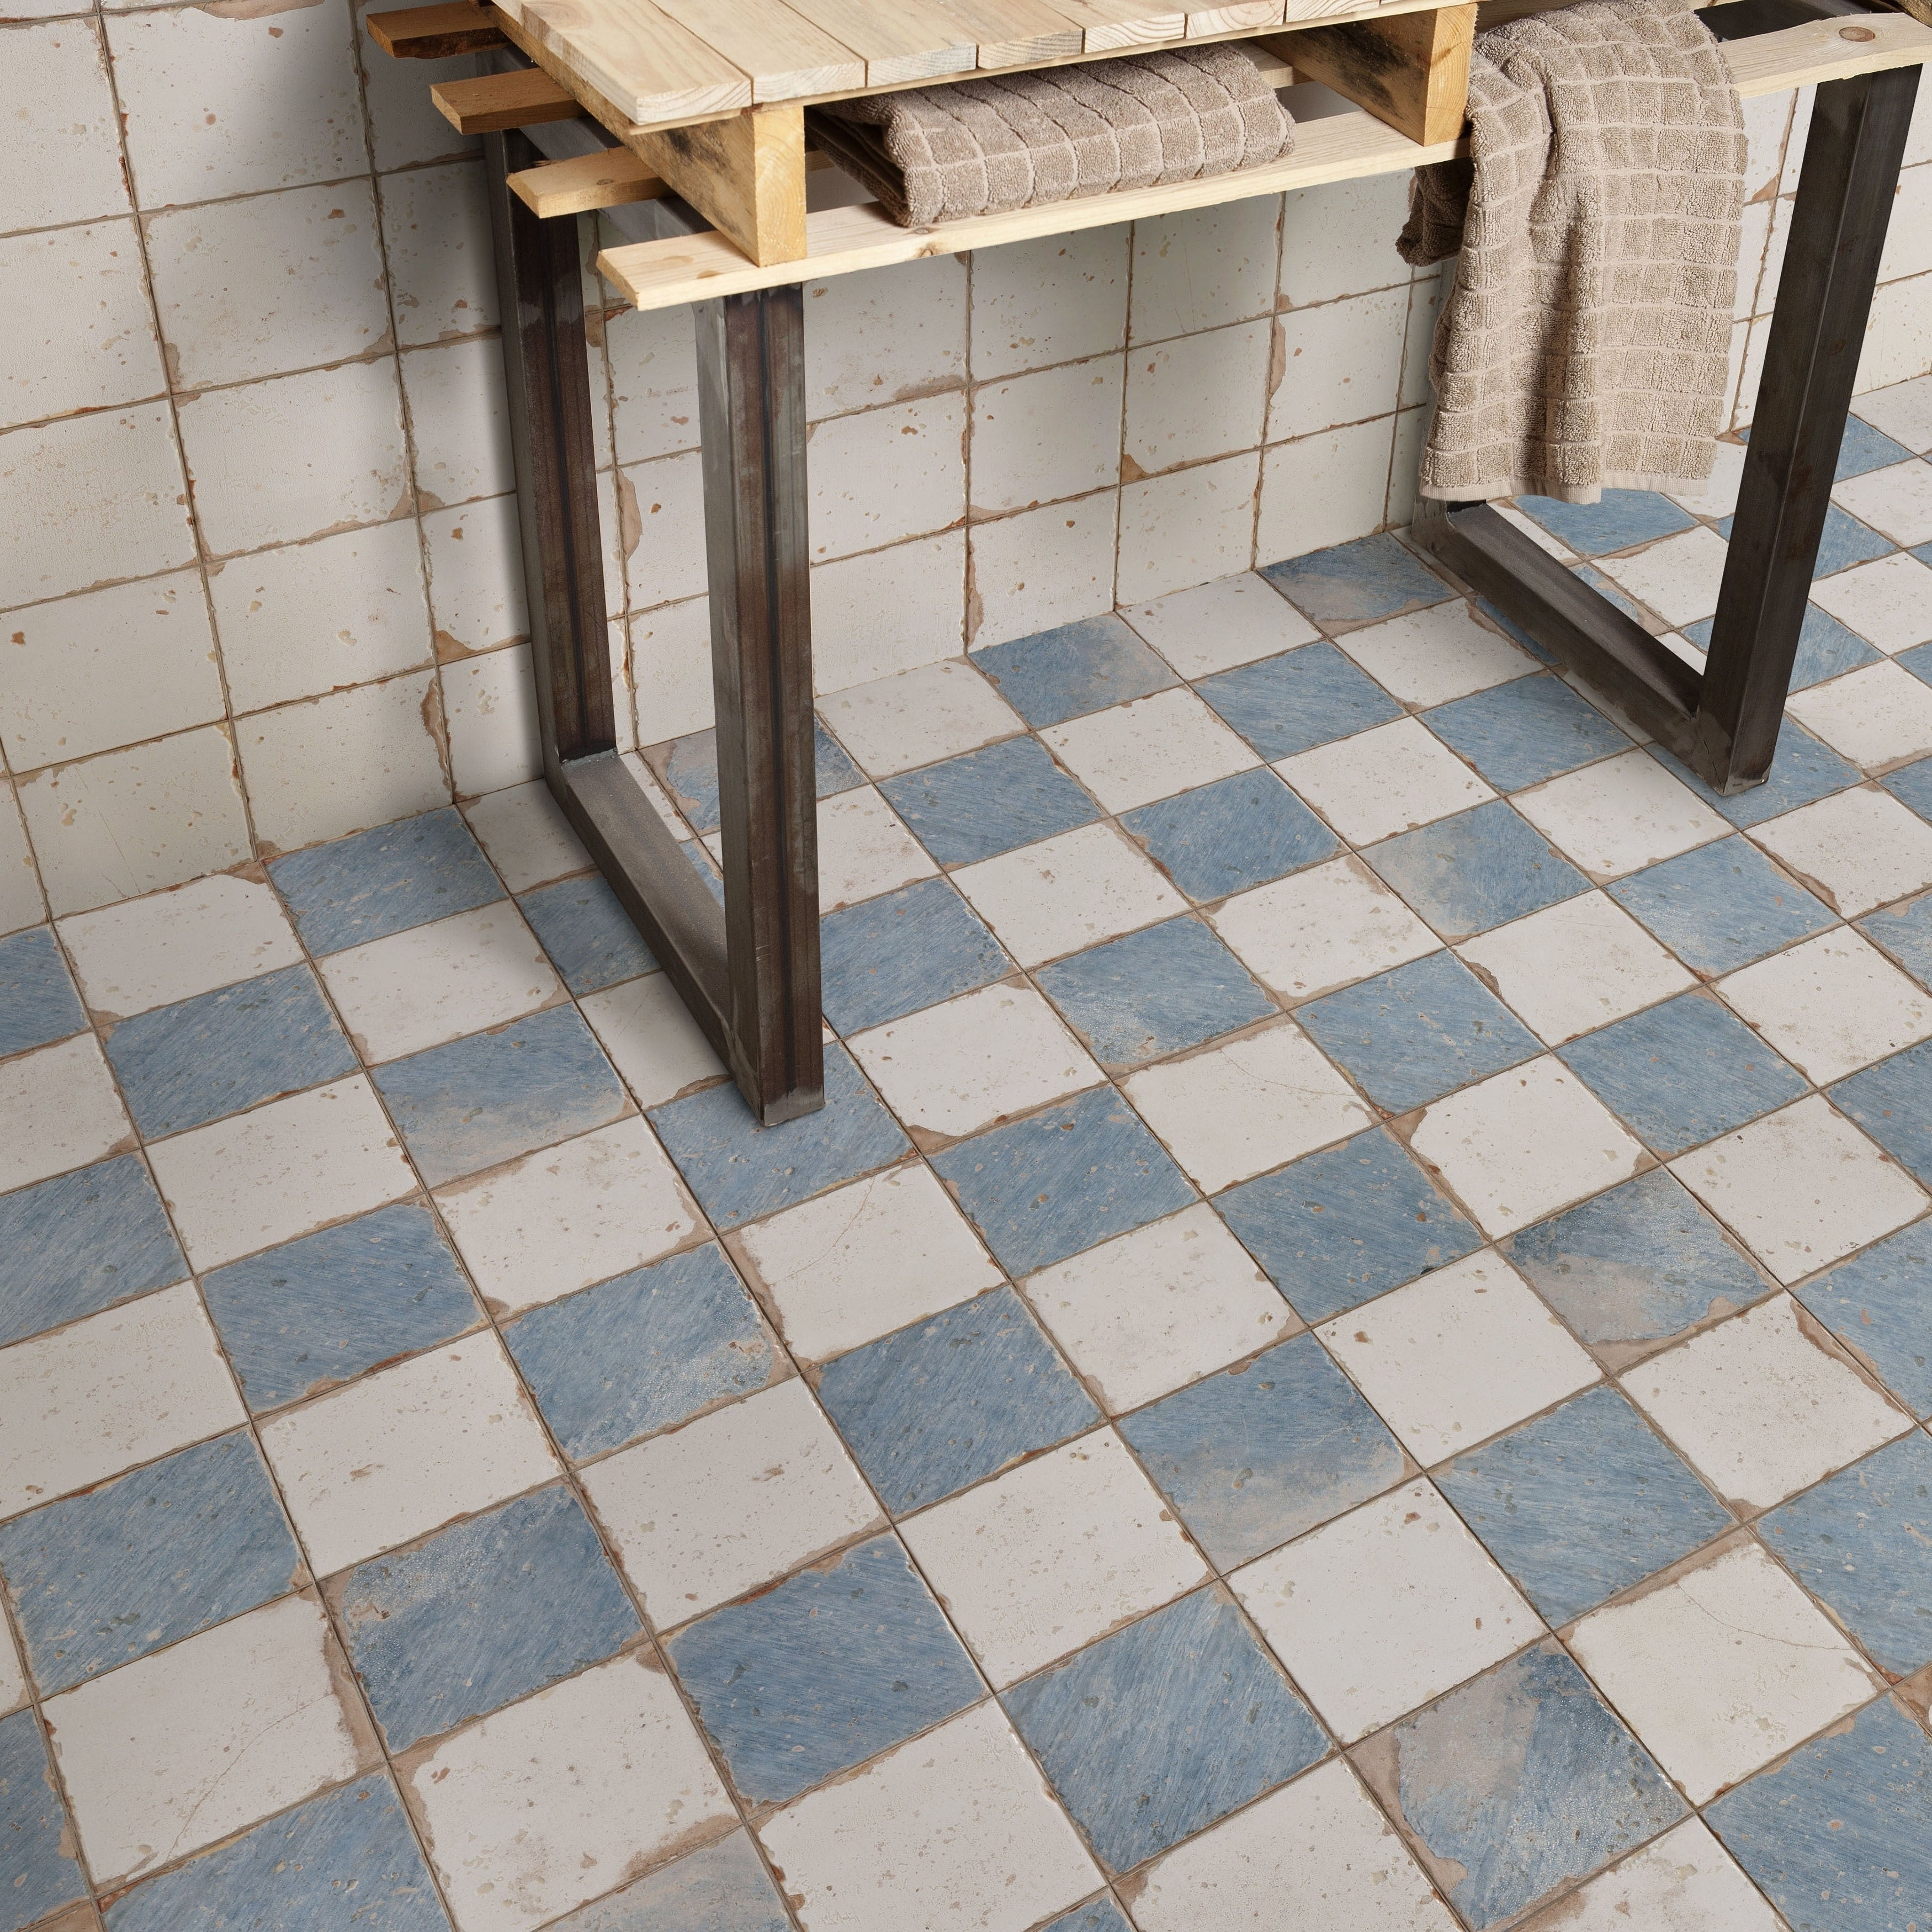 Ceramic Tile Find Great Home Improvement Deals Shopping At